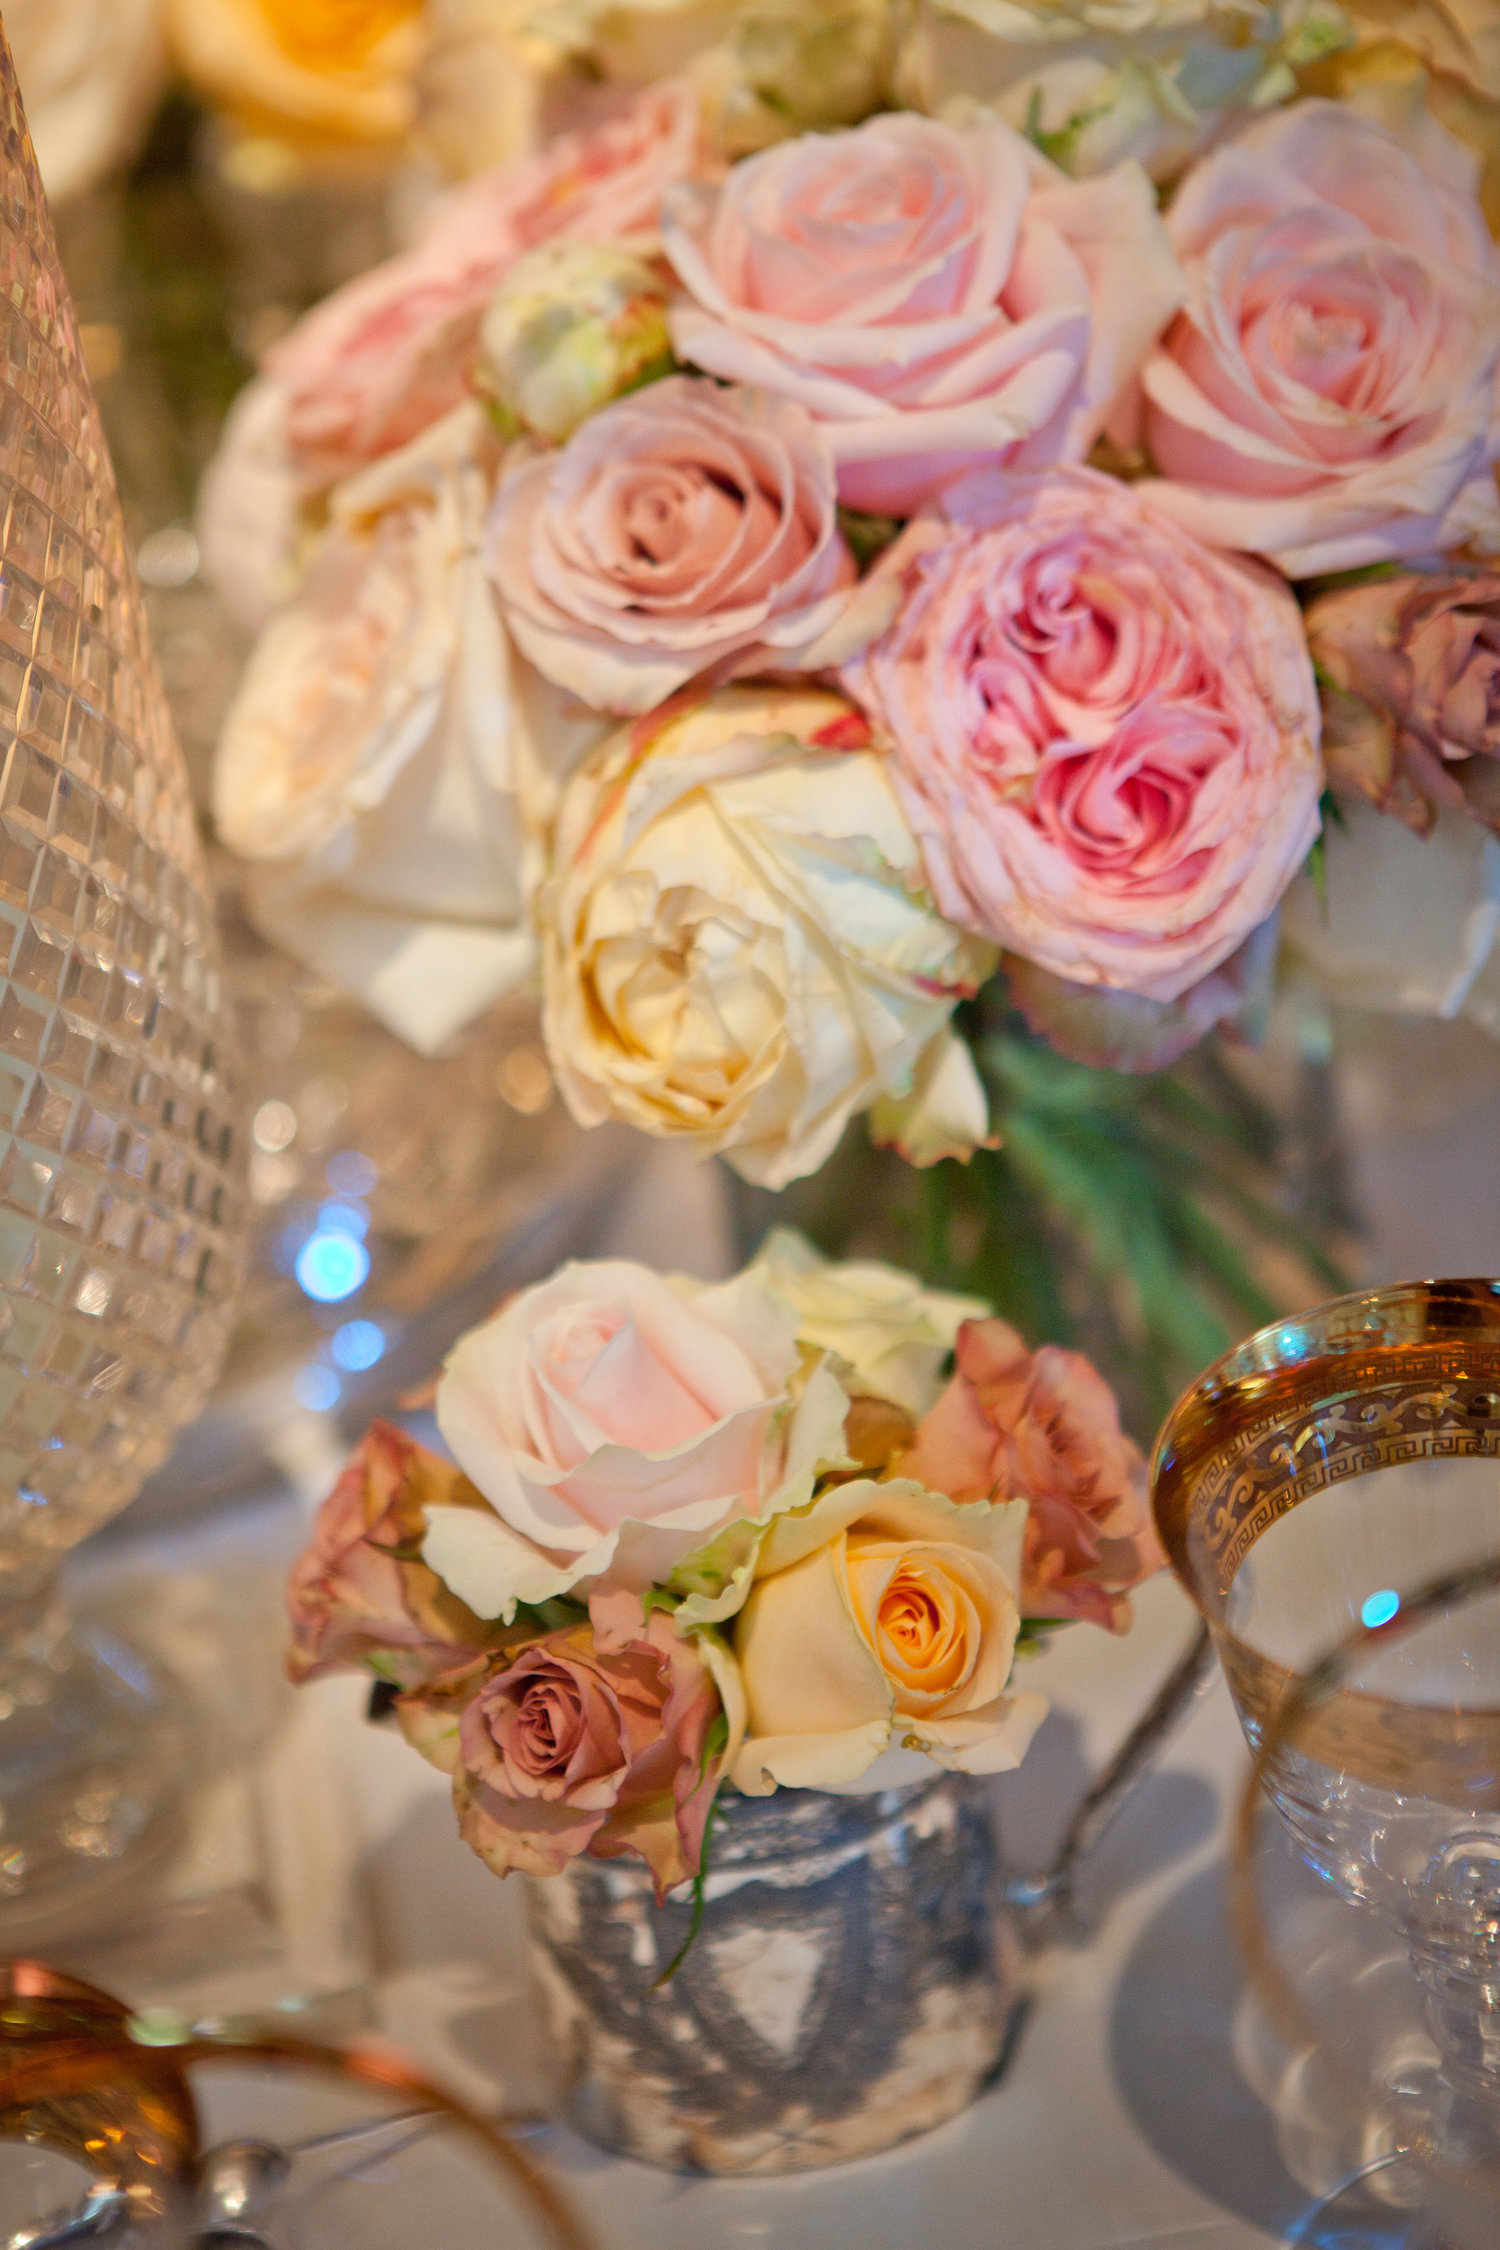 roses wedding flowers.jpg